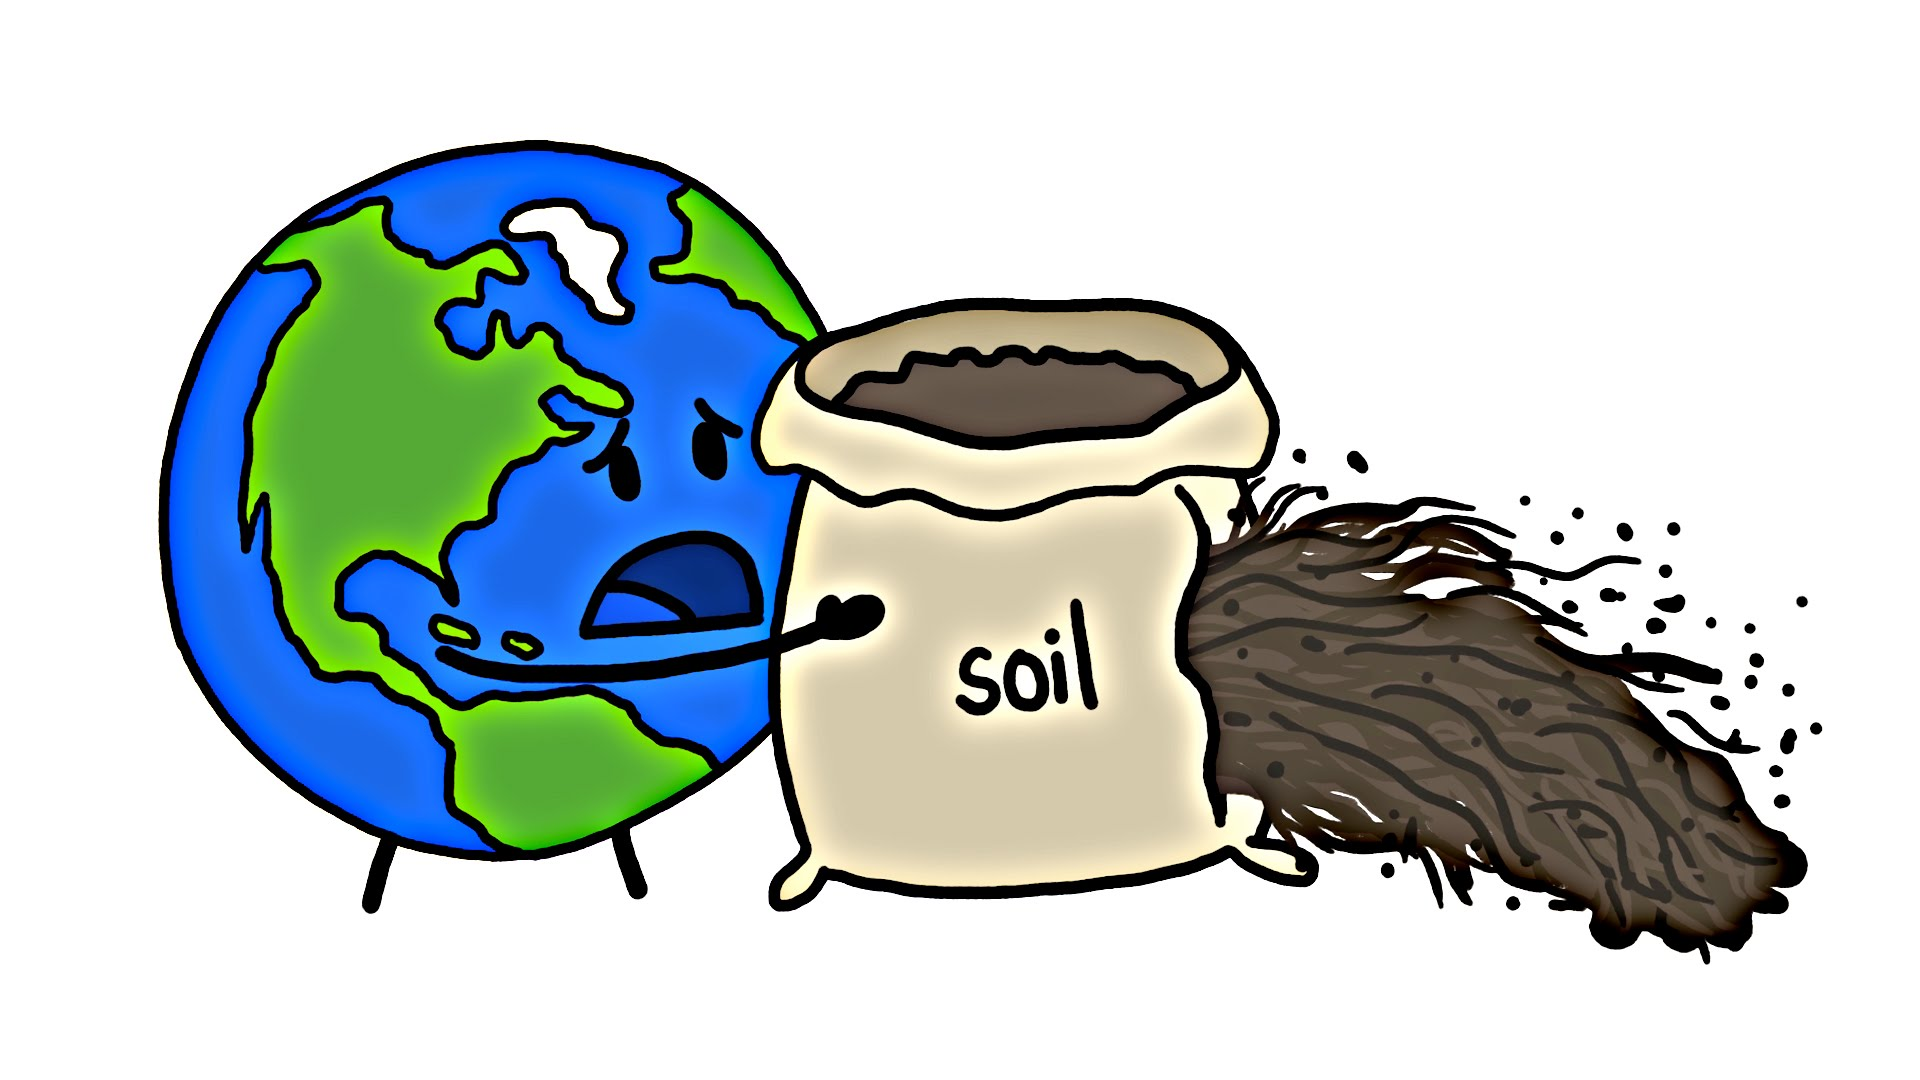 Soil clipart soil earth. How to literally save